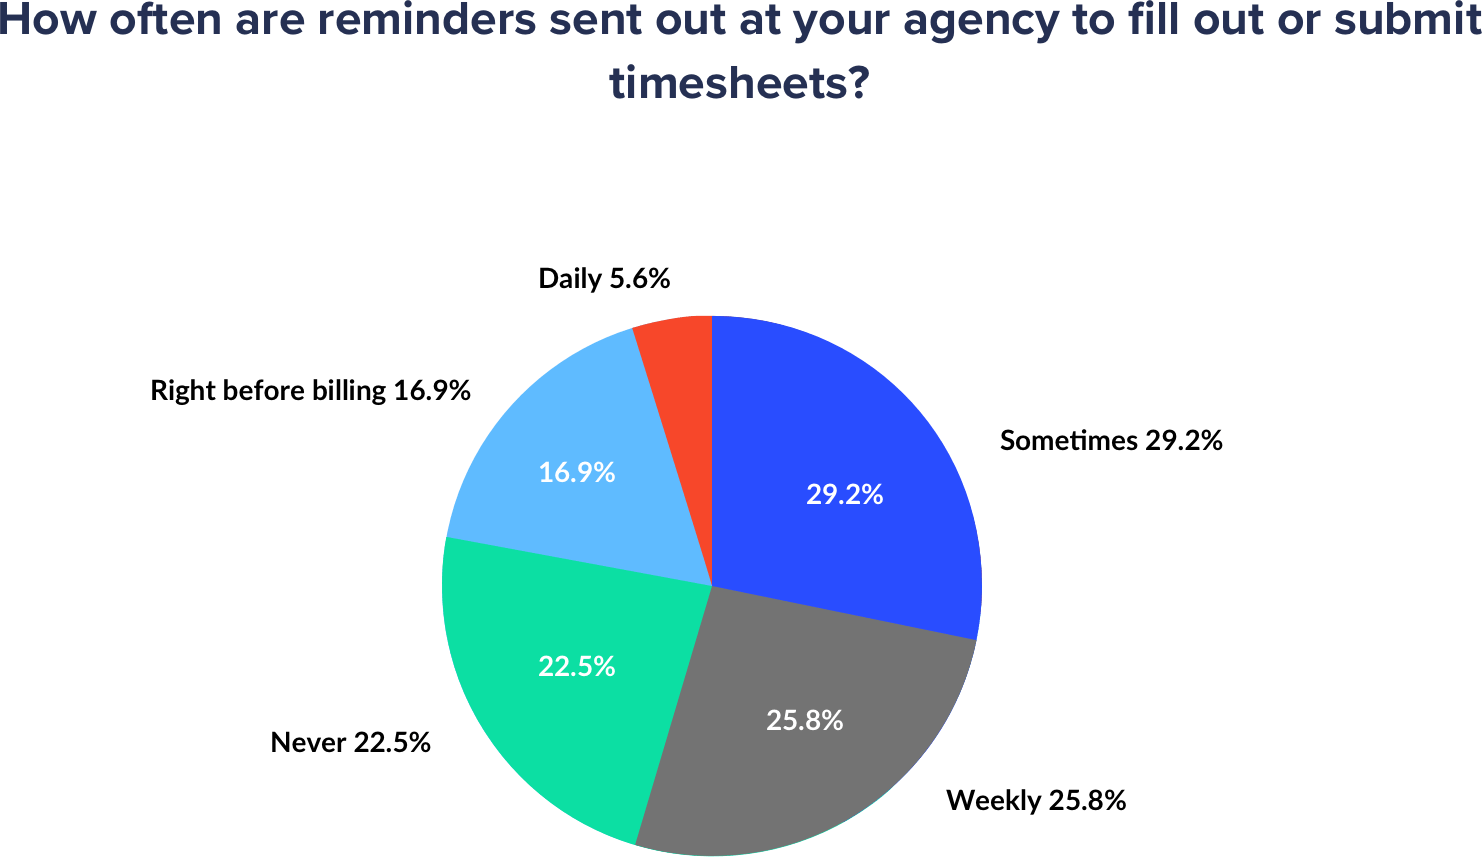 how often are timesheet reminders sent